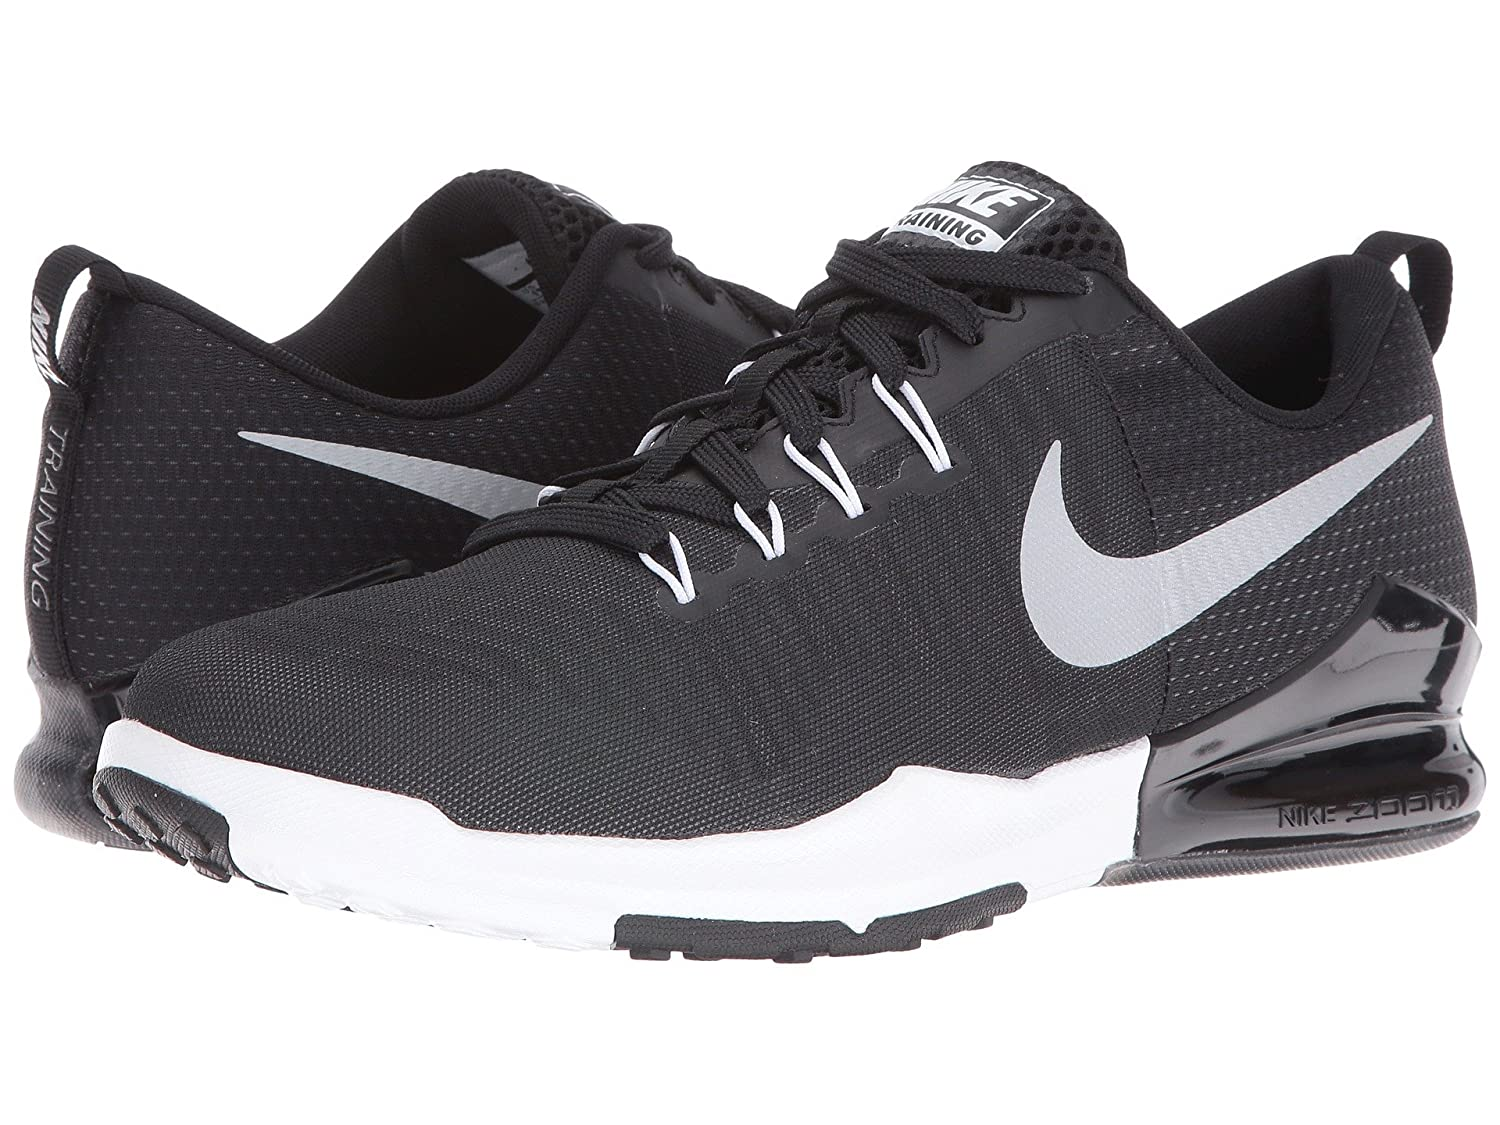 Nike Zoom Train Action (7 UK): Buy Online at Low Prices in India - Amazon.in